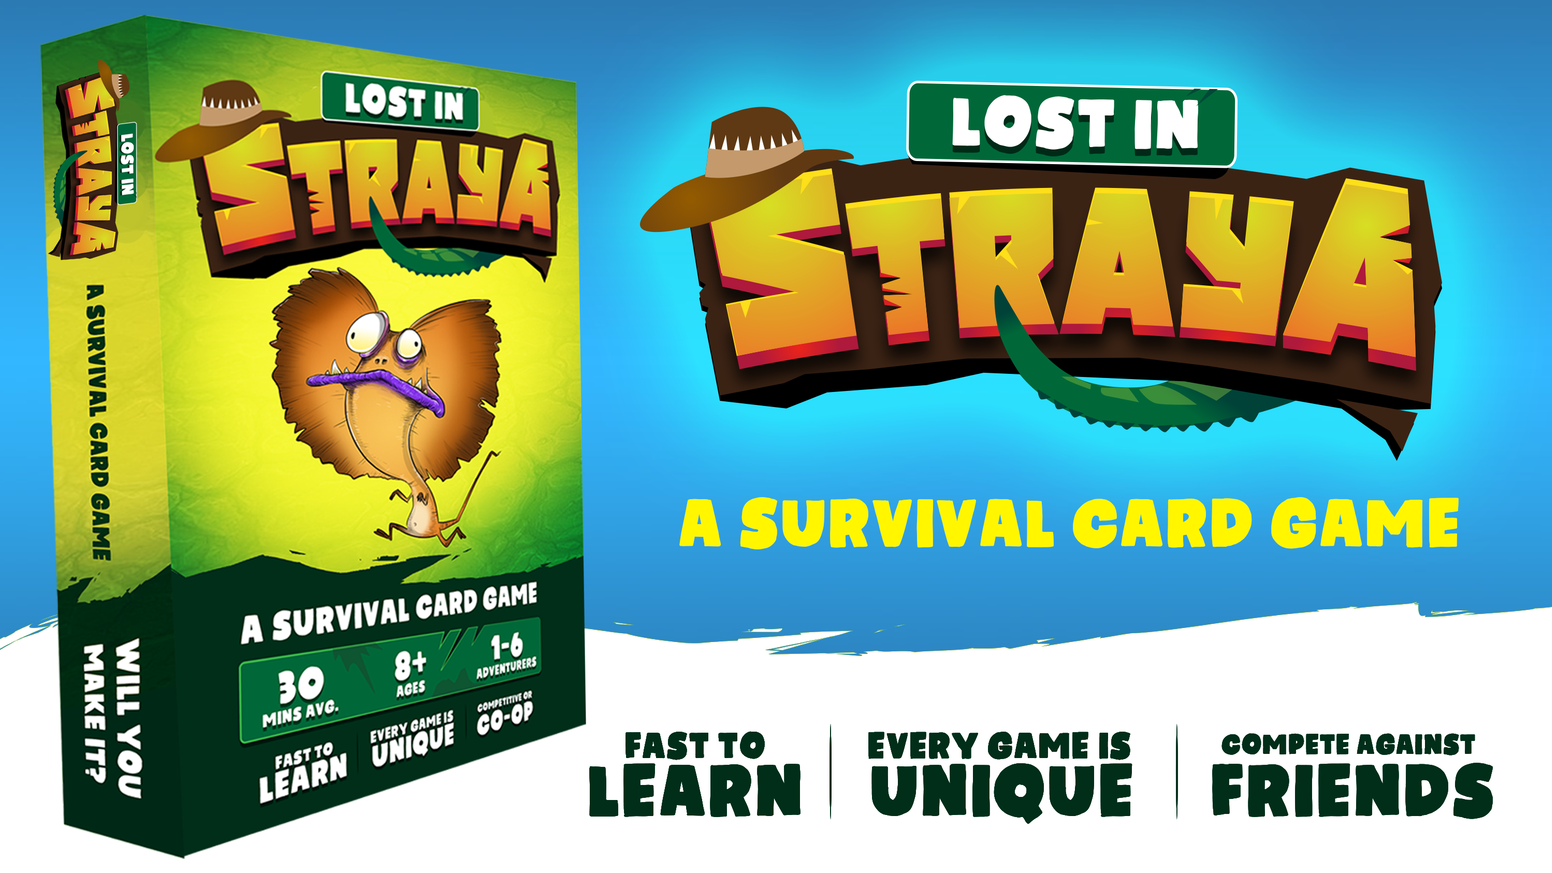 � A survival card game set in the Australian Outback! Craft. Explore. Survive. Get rescued!